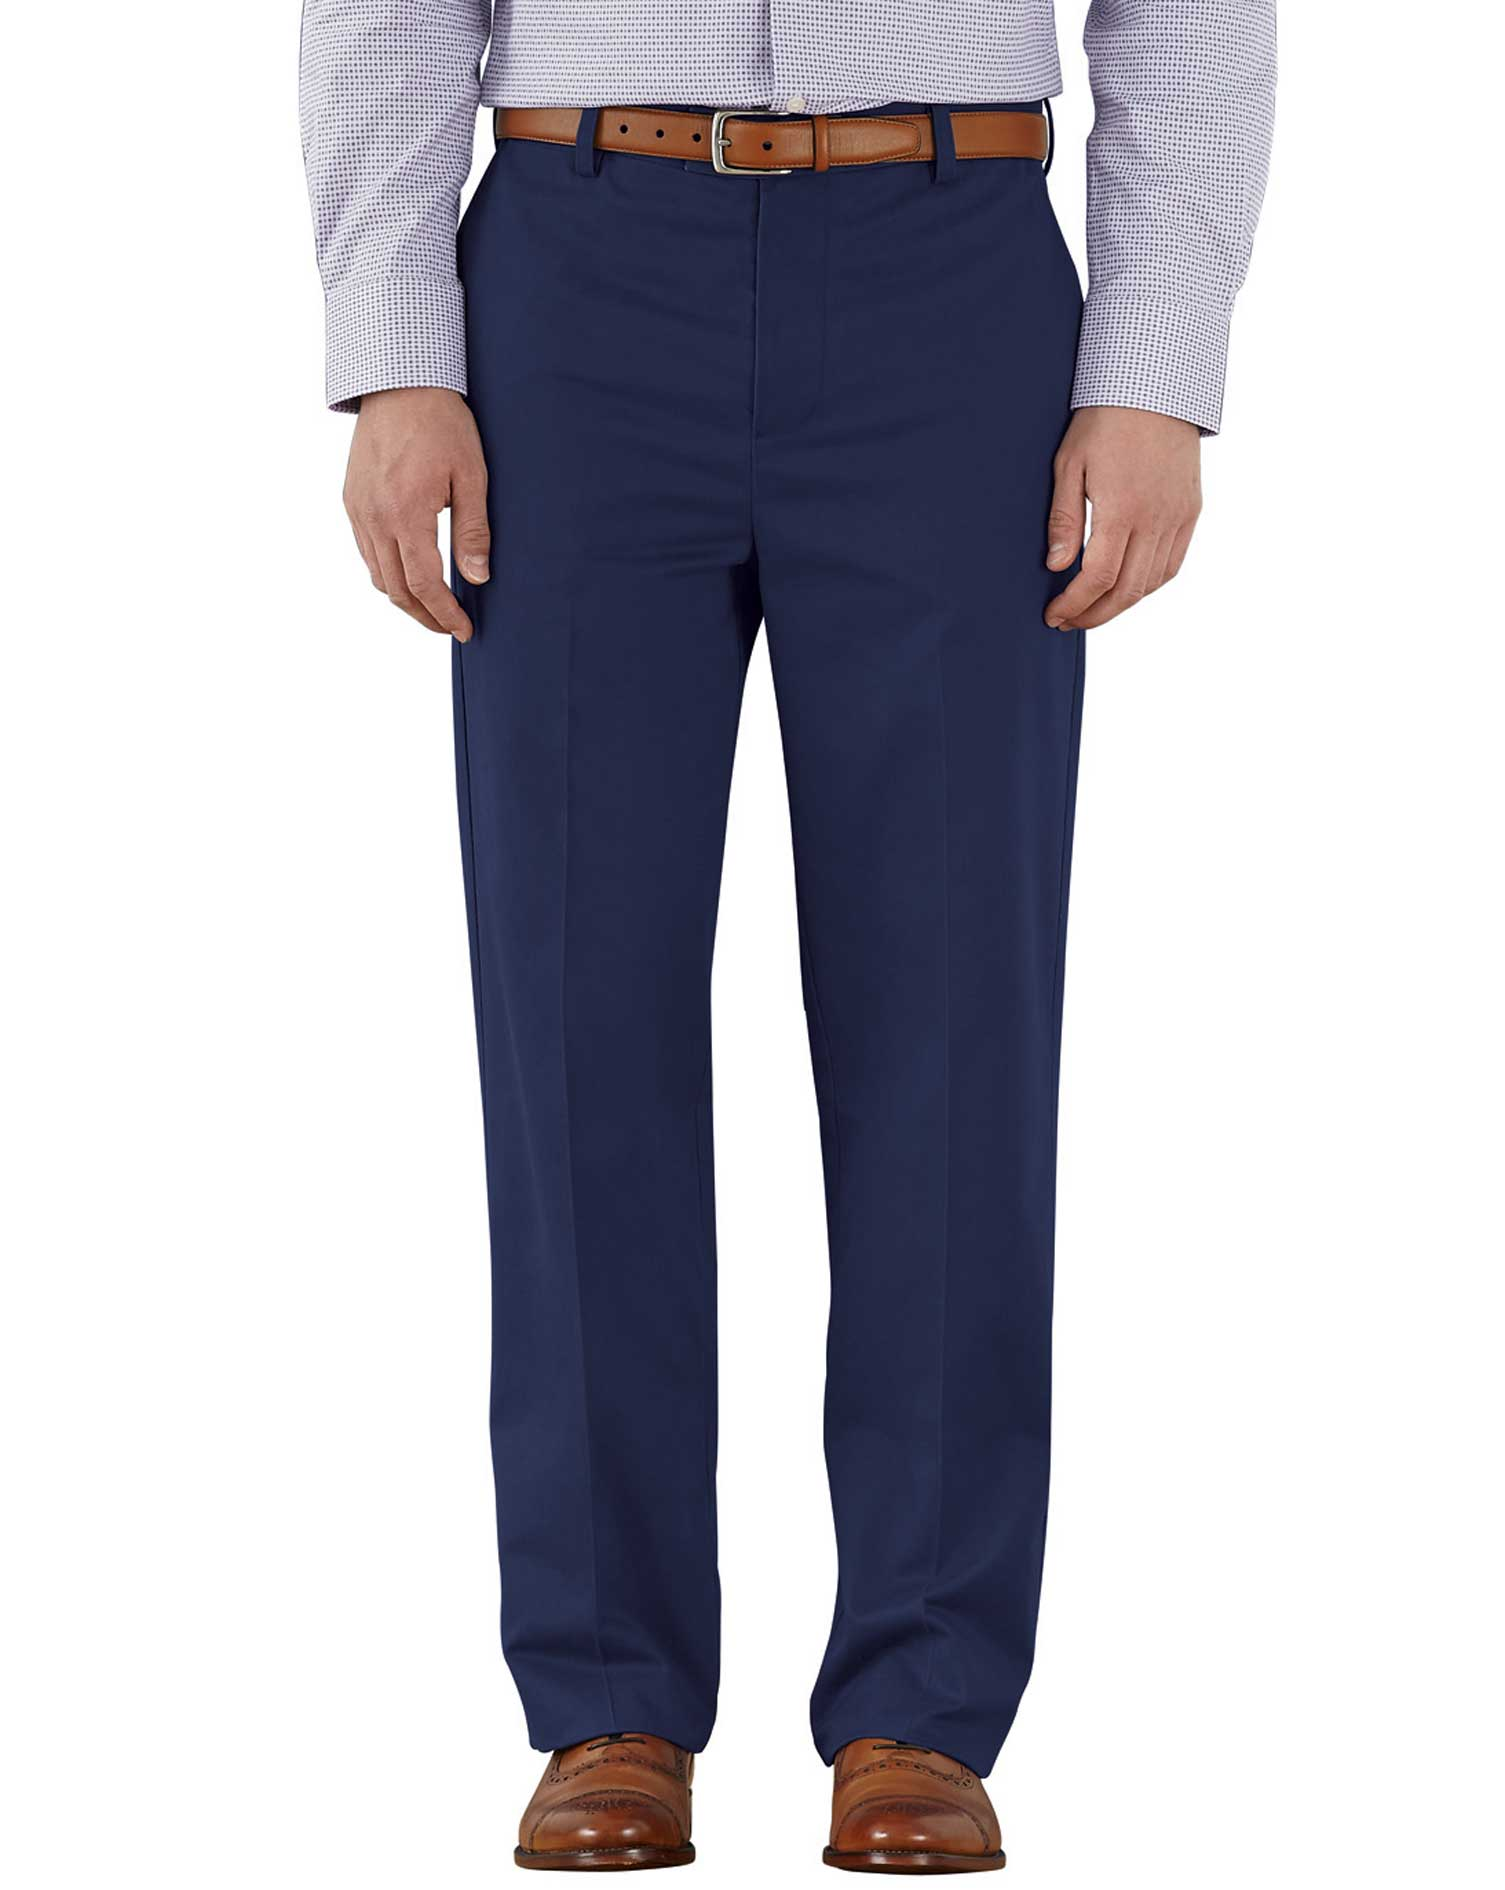 Marine Blue Classic Fit Flat Front Non-Iron Cotton Chino Trousers Size W36 L34 by Charles Tyrwhitt